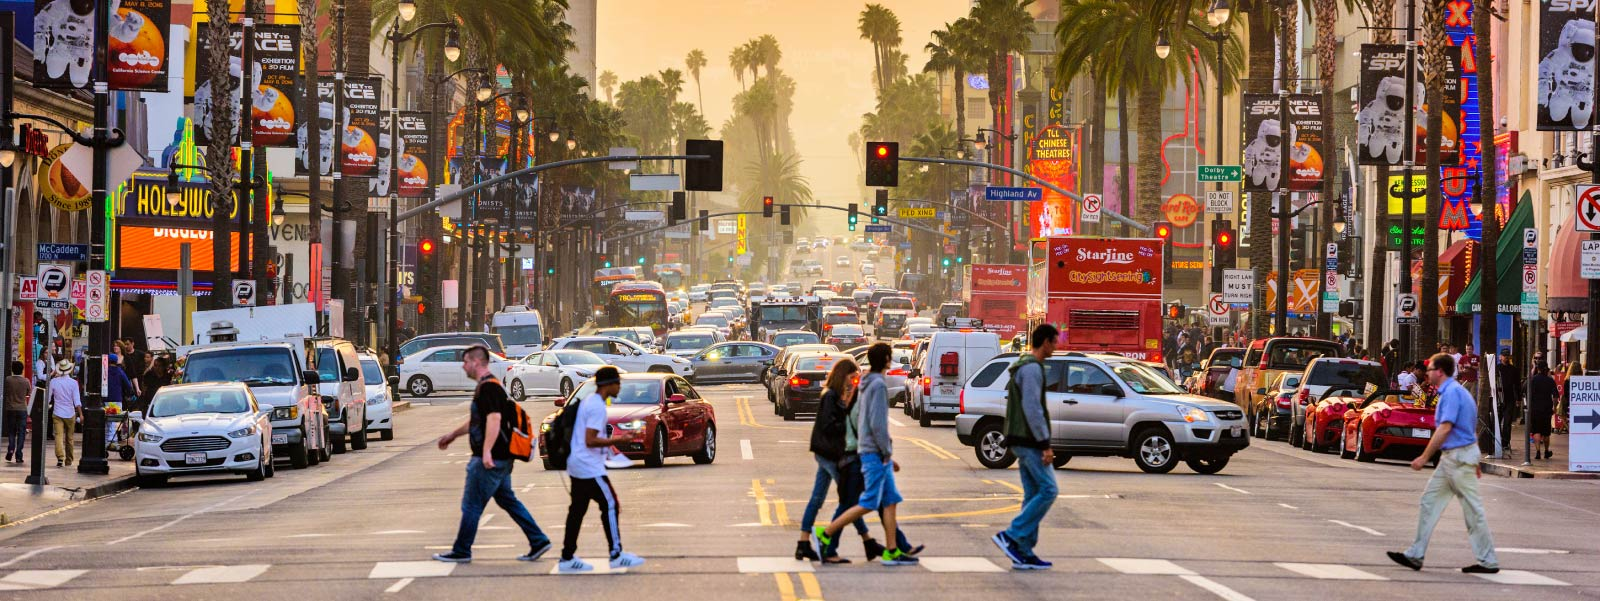 5 Los Angeles Neighborhoods That Are Becoming More Pedestrian-Friendly